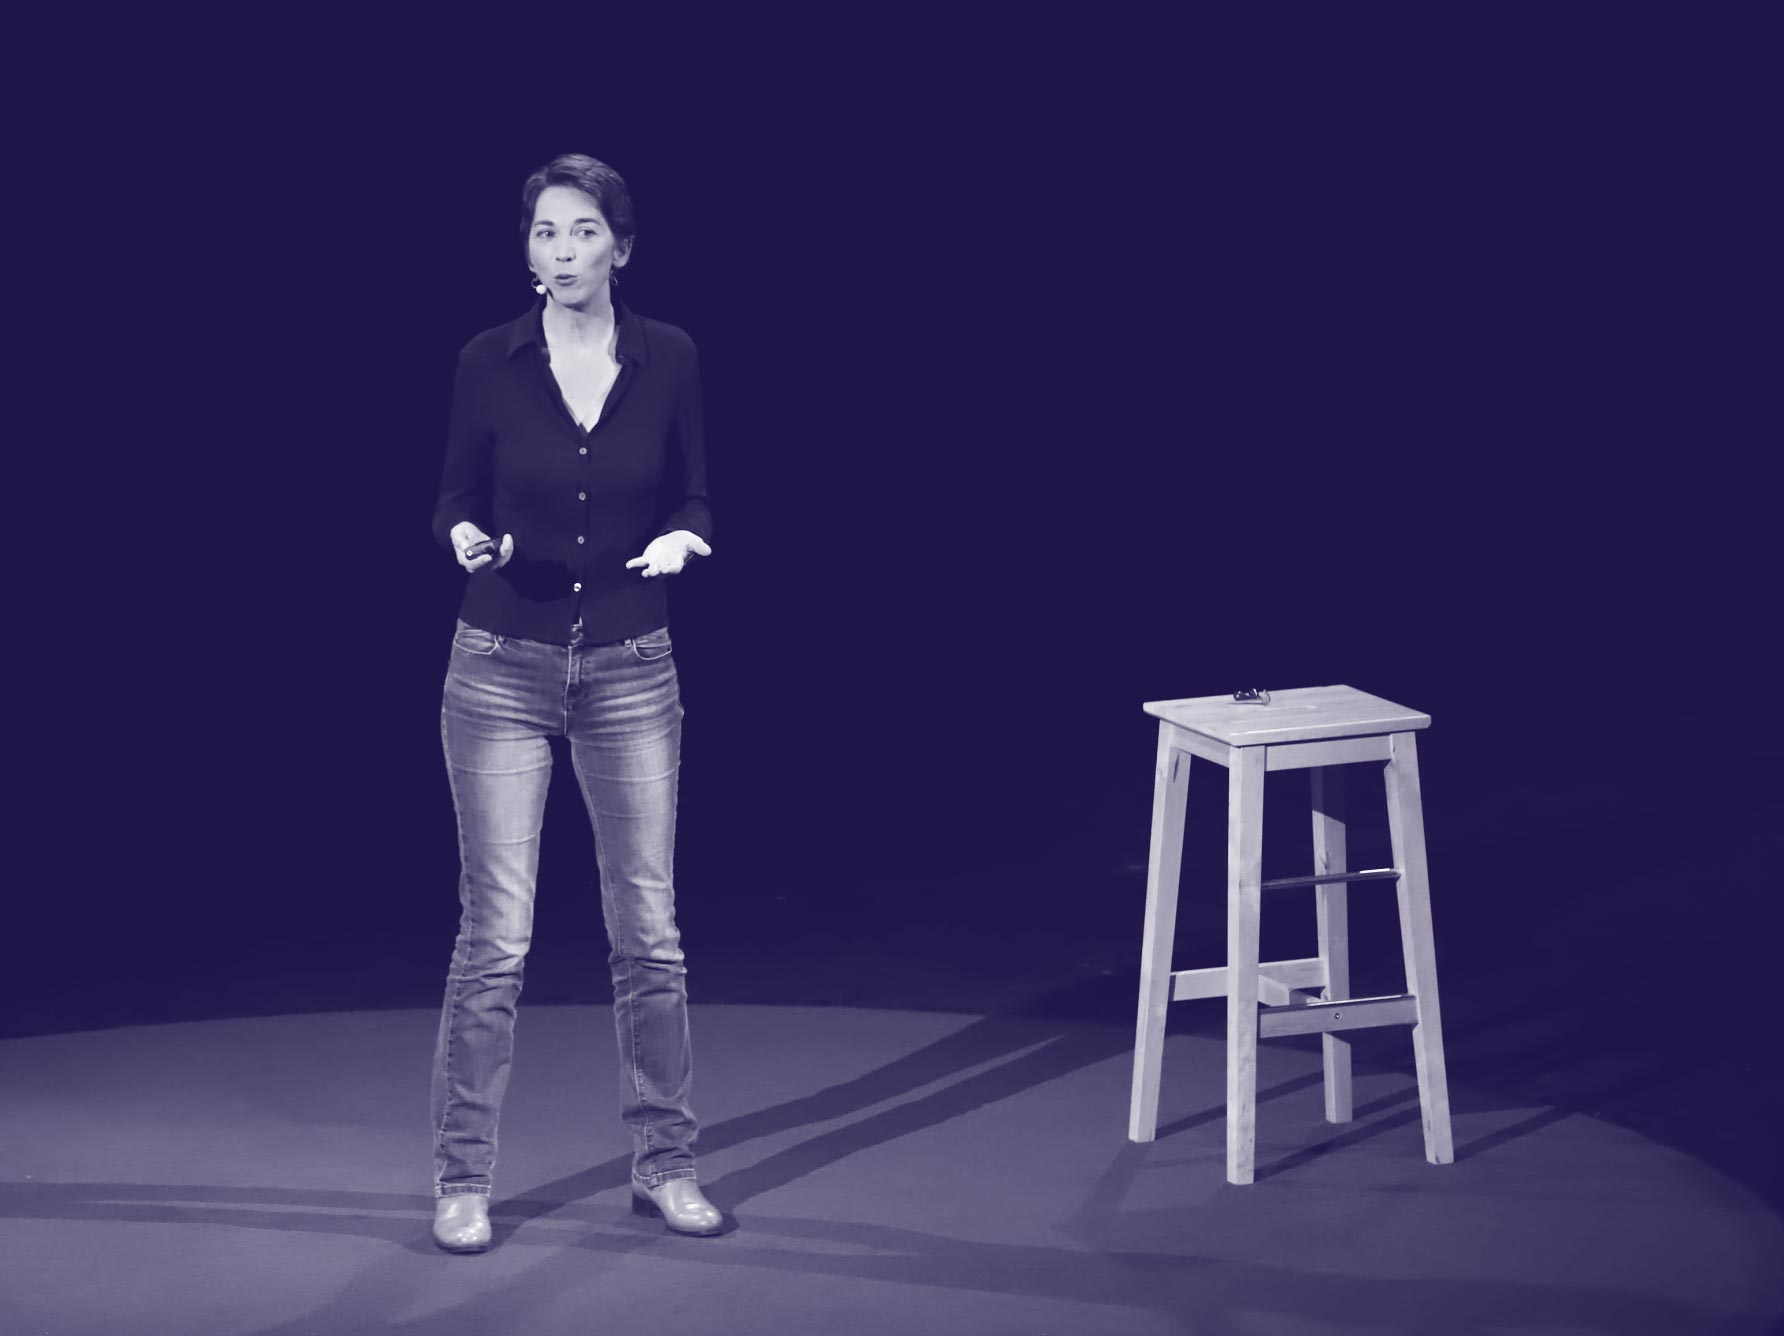 odile-fillod-analyse-talk-tedxparis.jpg